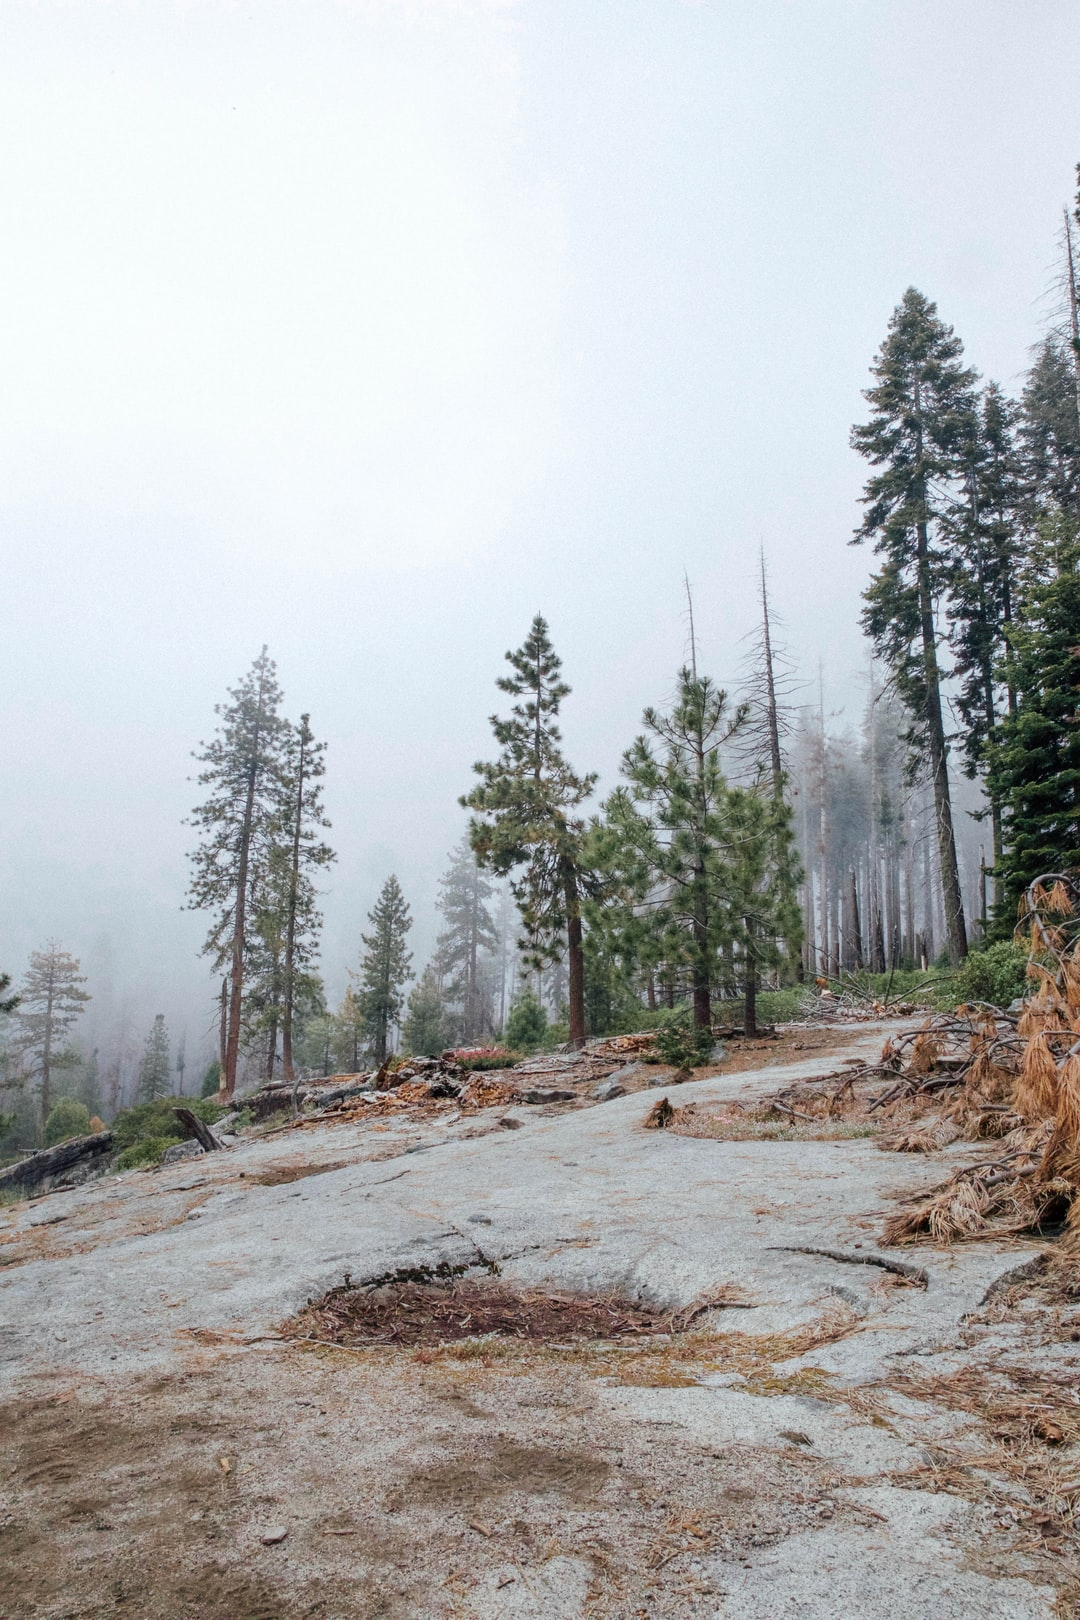 Hiking through the Sequoia National Park was a truly amazing experience. At one point the fog had settled all around us and it felt as though we were in a cloud.